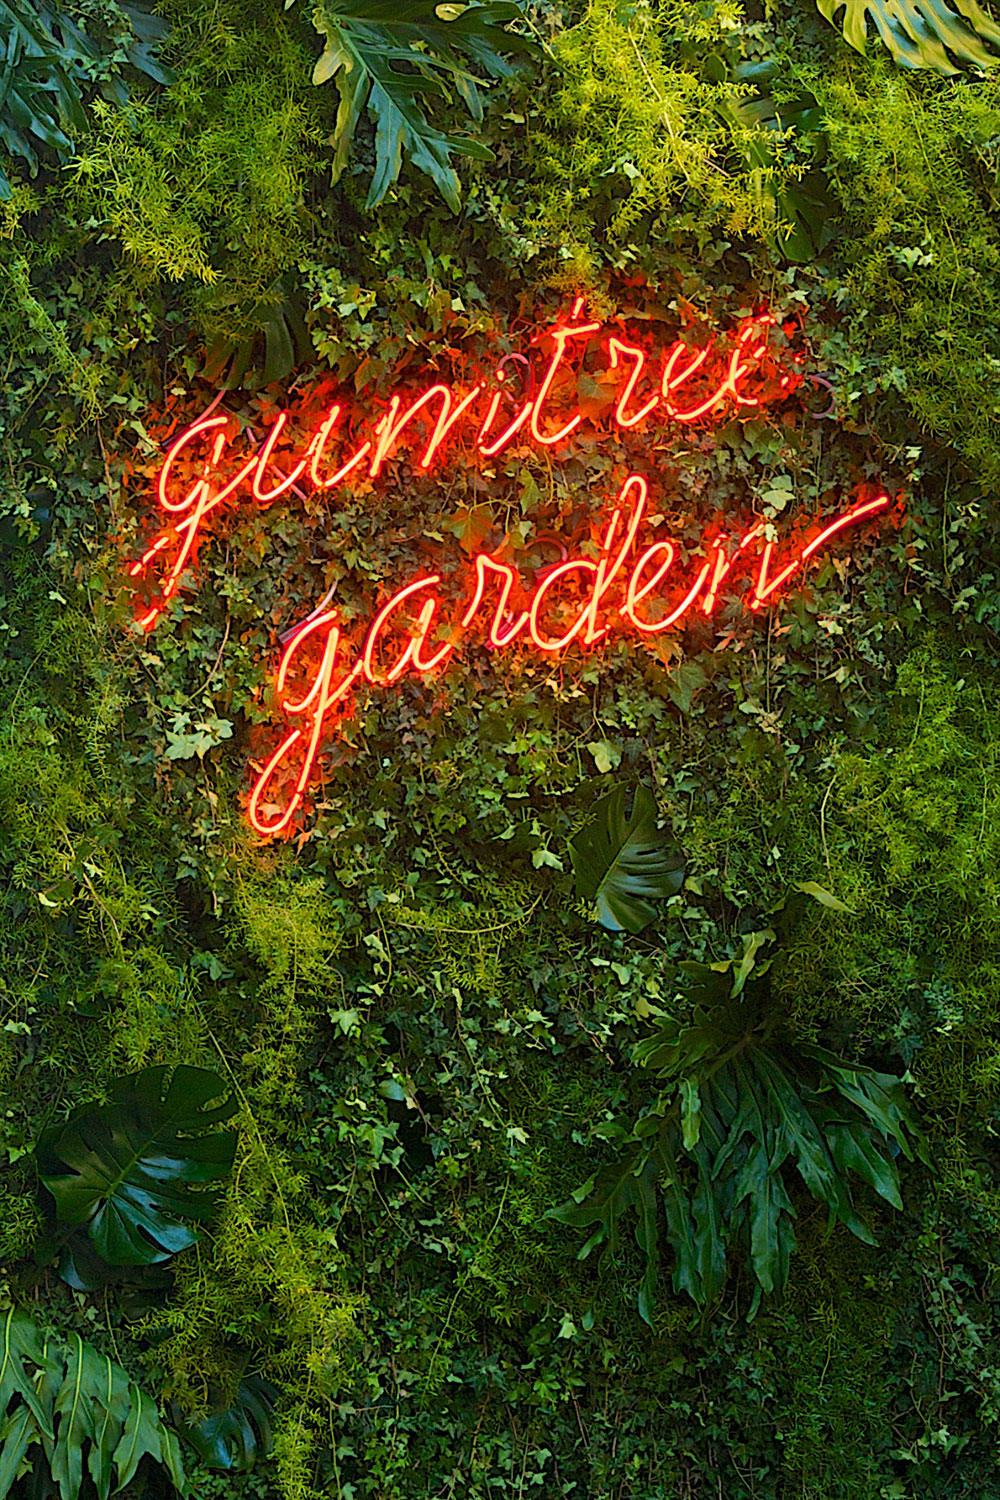 Gumtree Garden Pop-Up Bar, Designed by Yellowtrace.